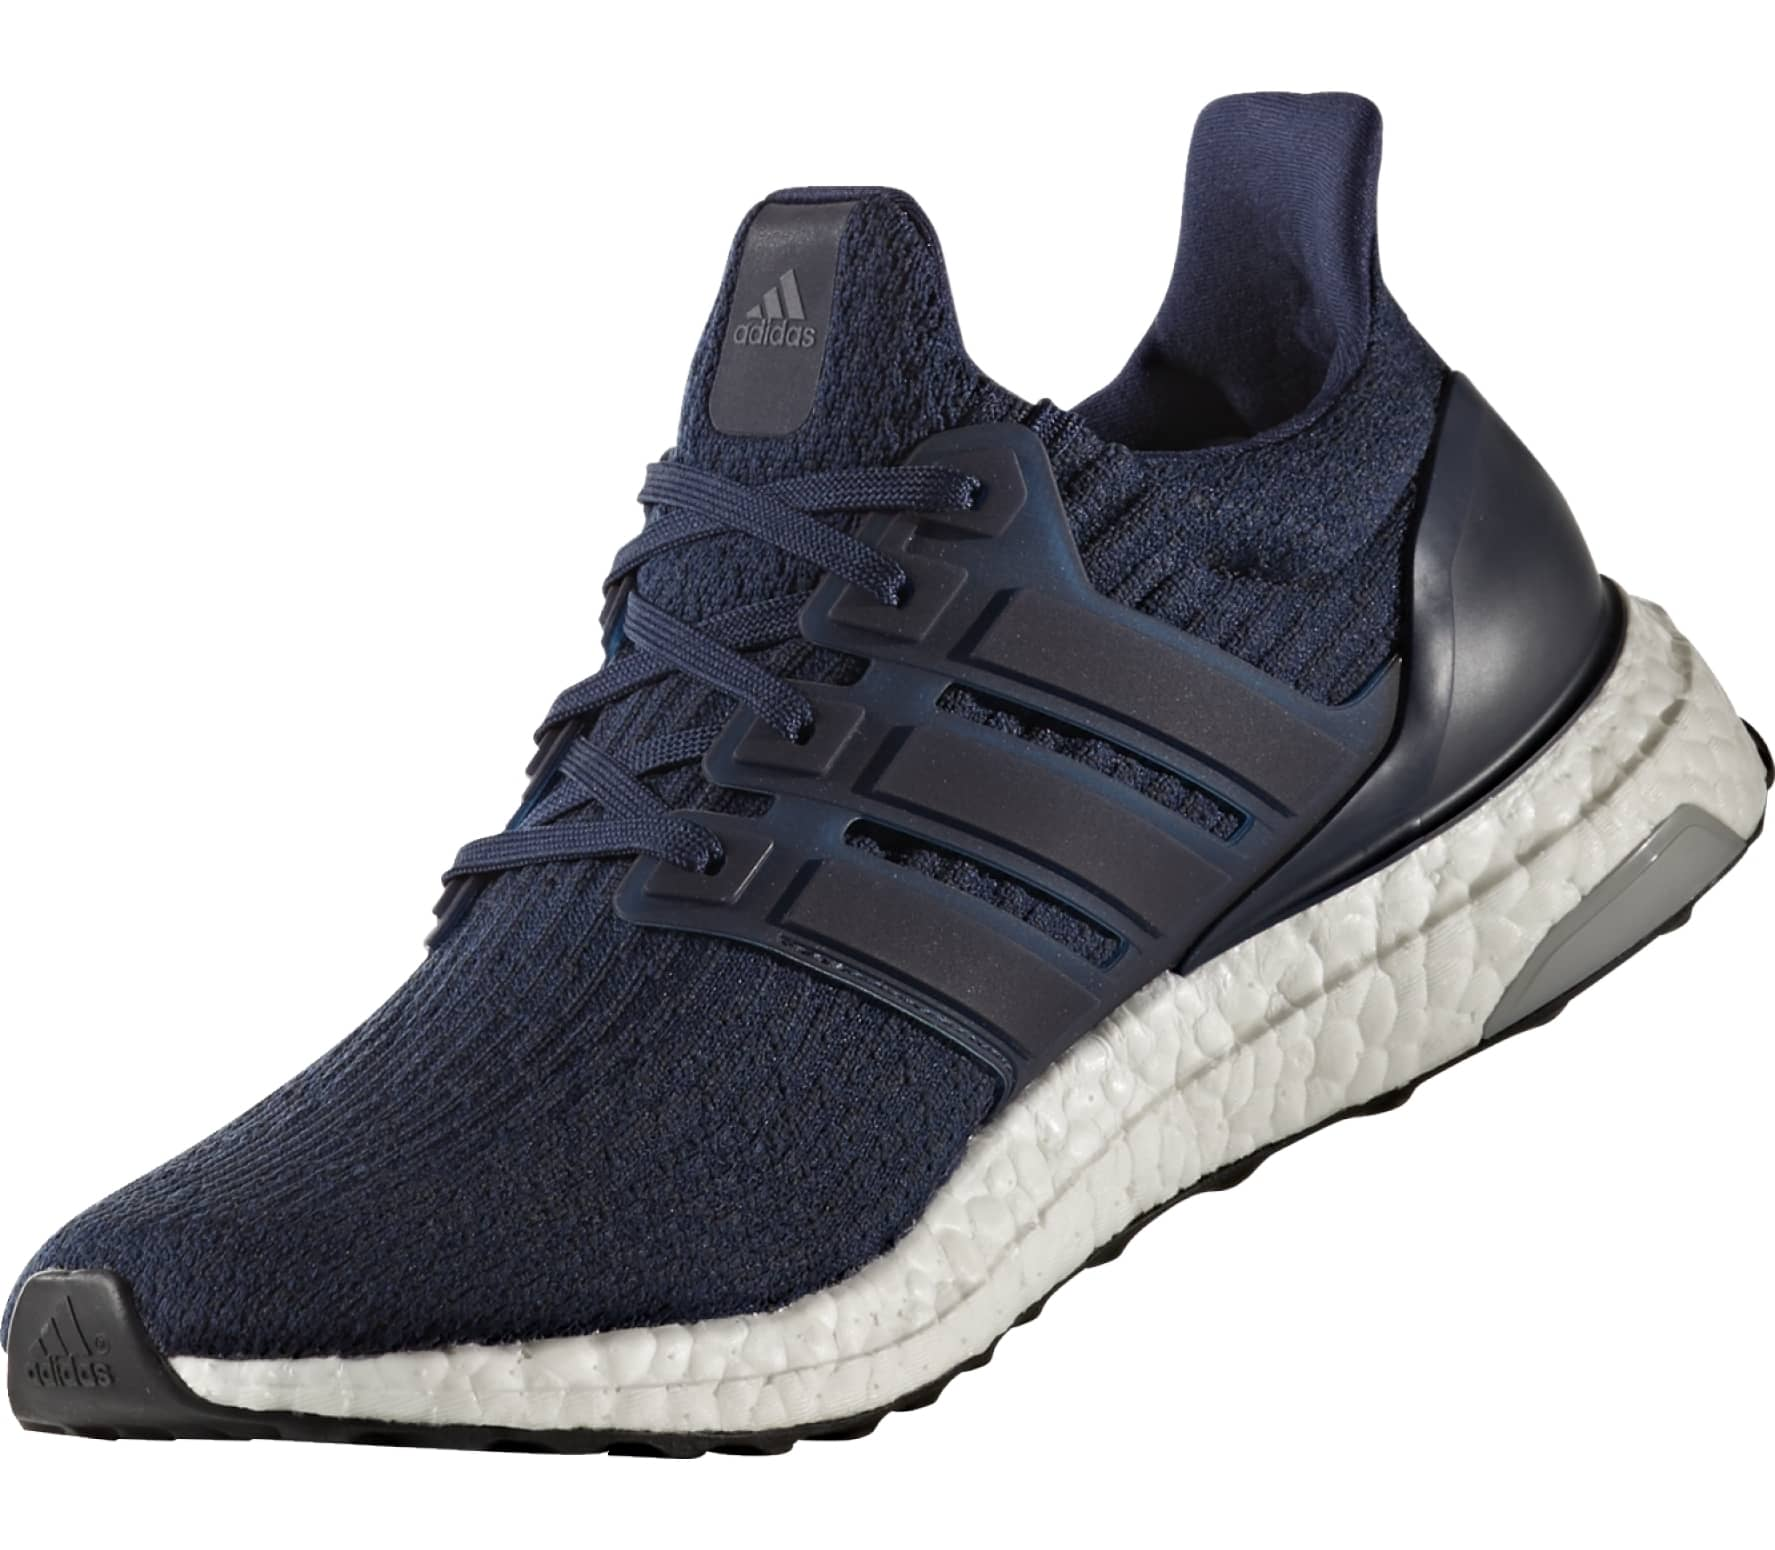 69a9f2b1712 Adidas - Ultra Boost men s running shoes (dark blue black) - buy it ...